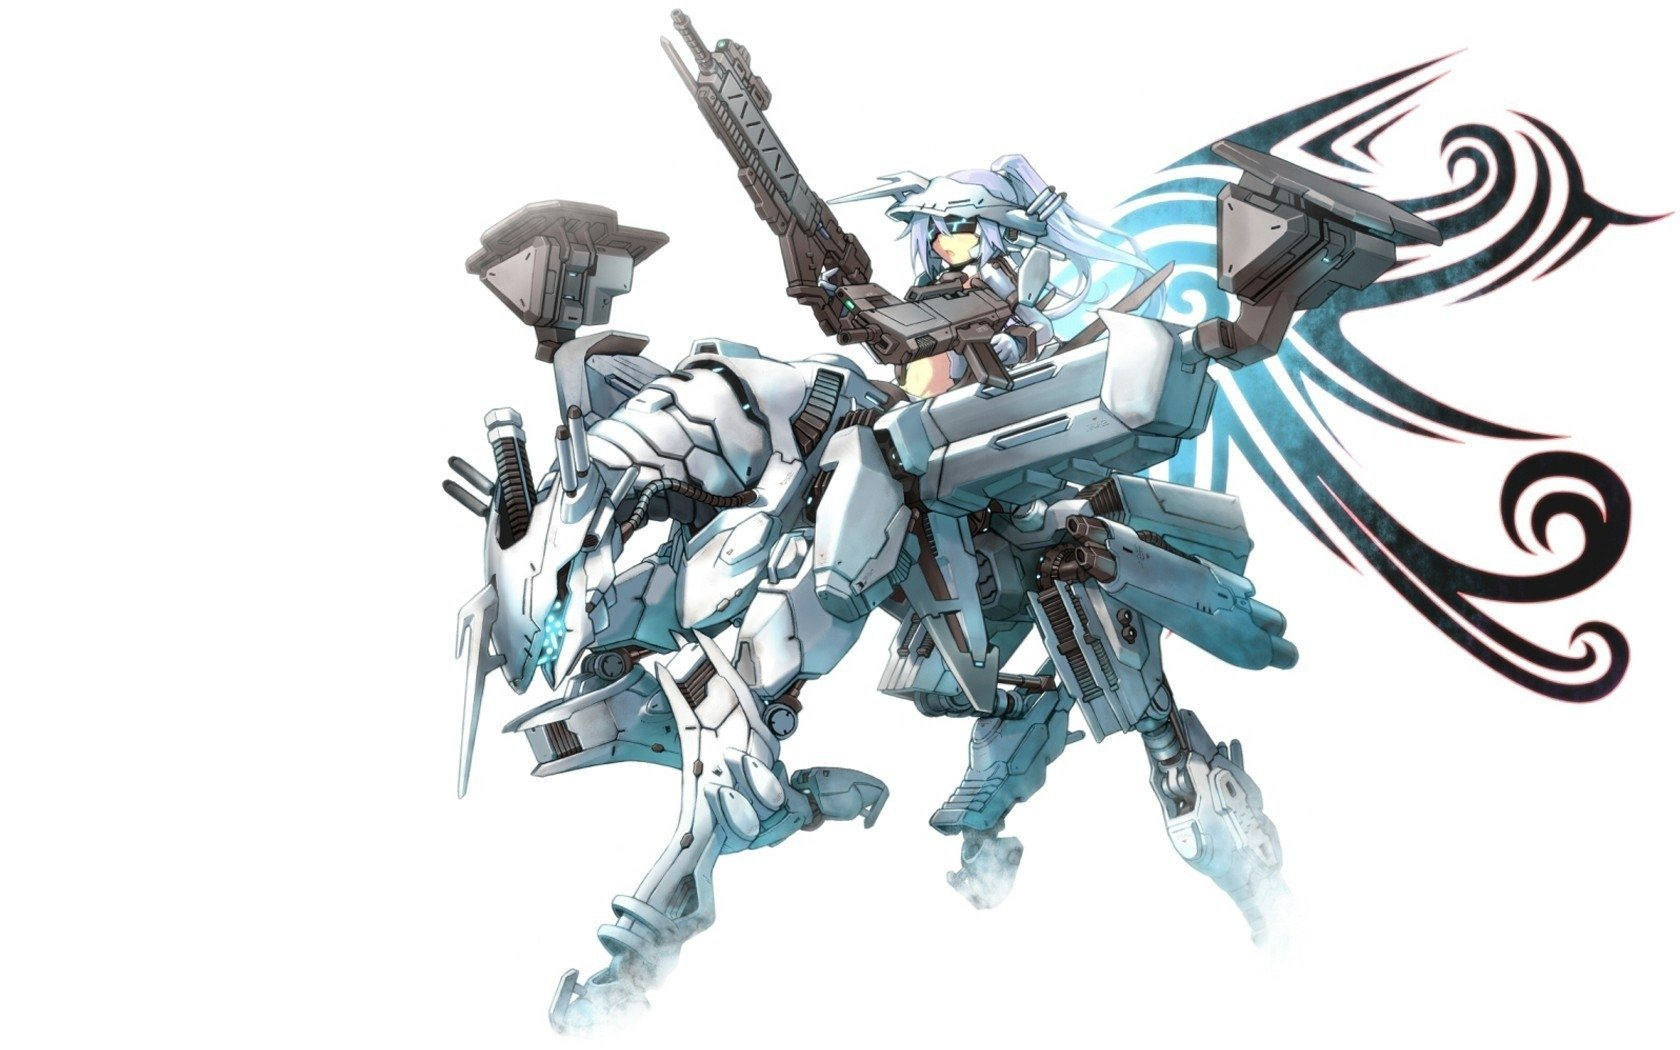 32 Armored Core Hd Wallpapers Background Images Wallpaper Abyss